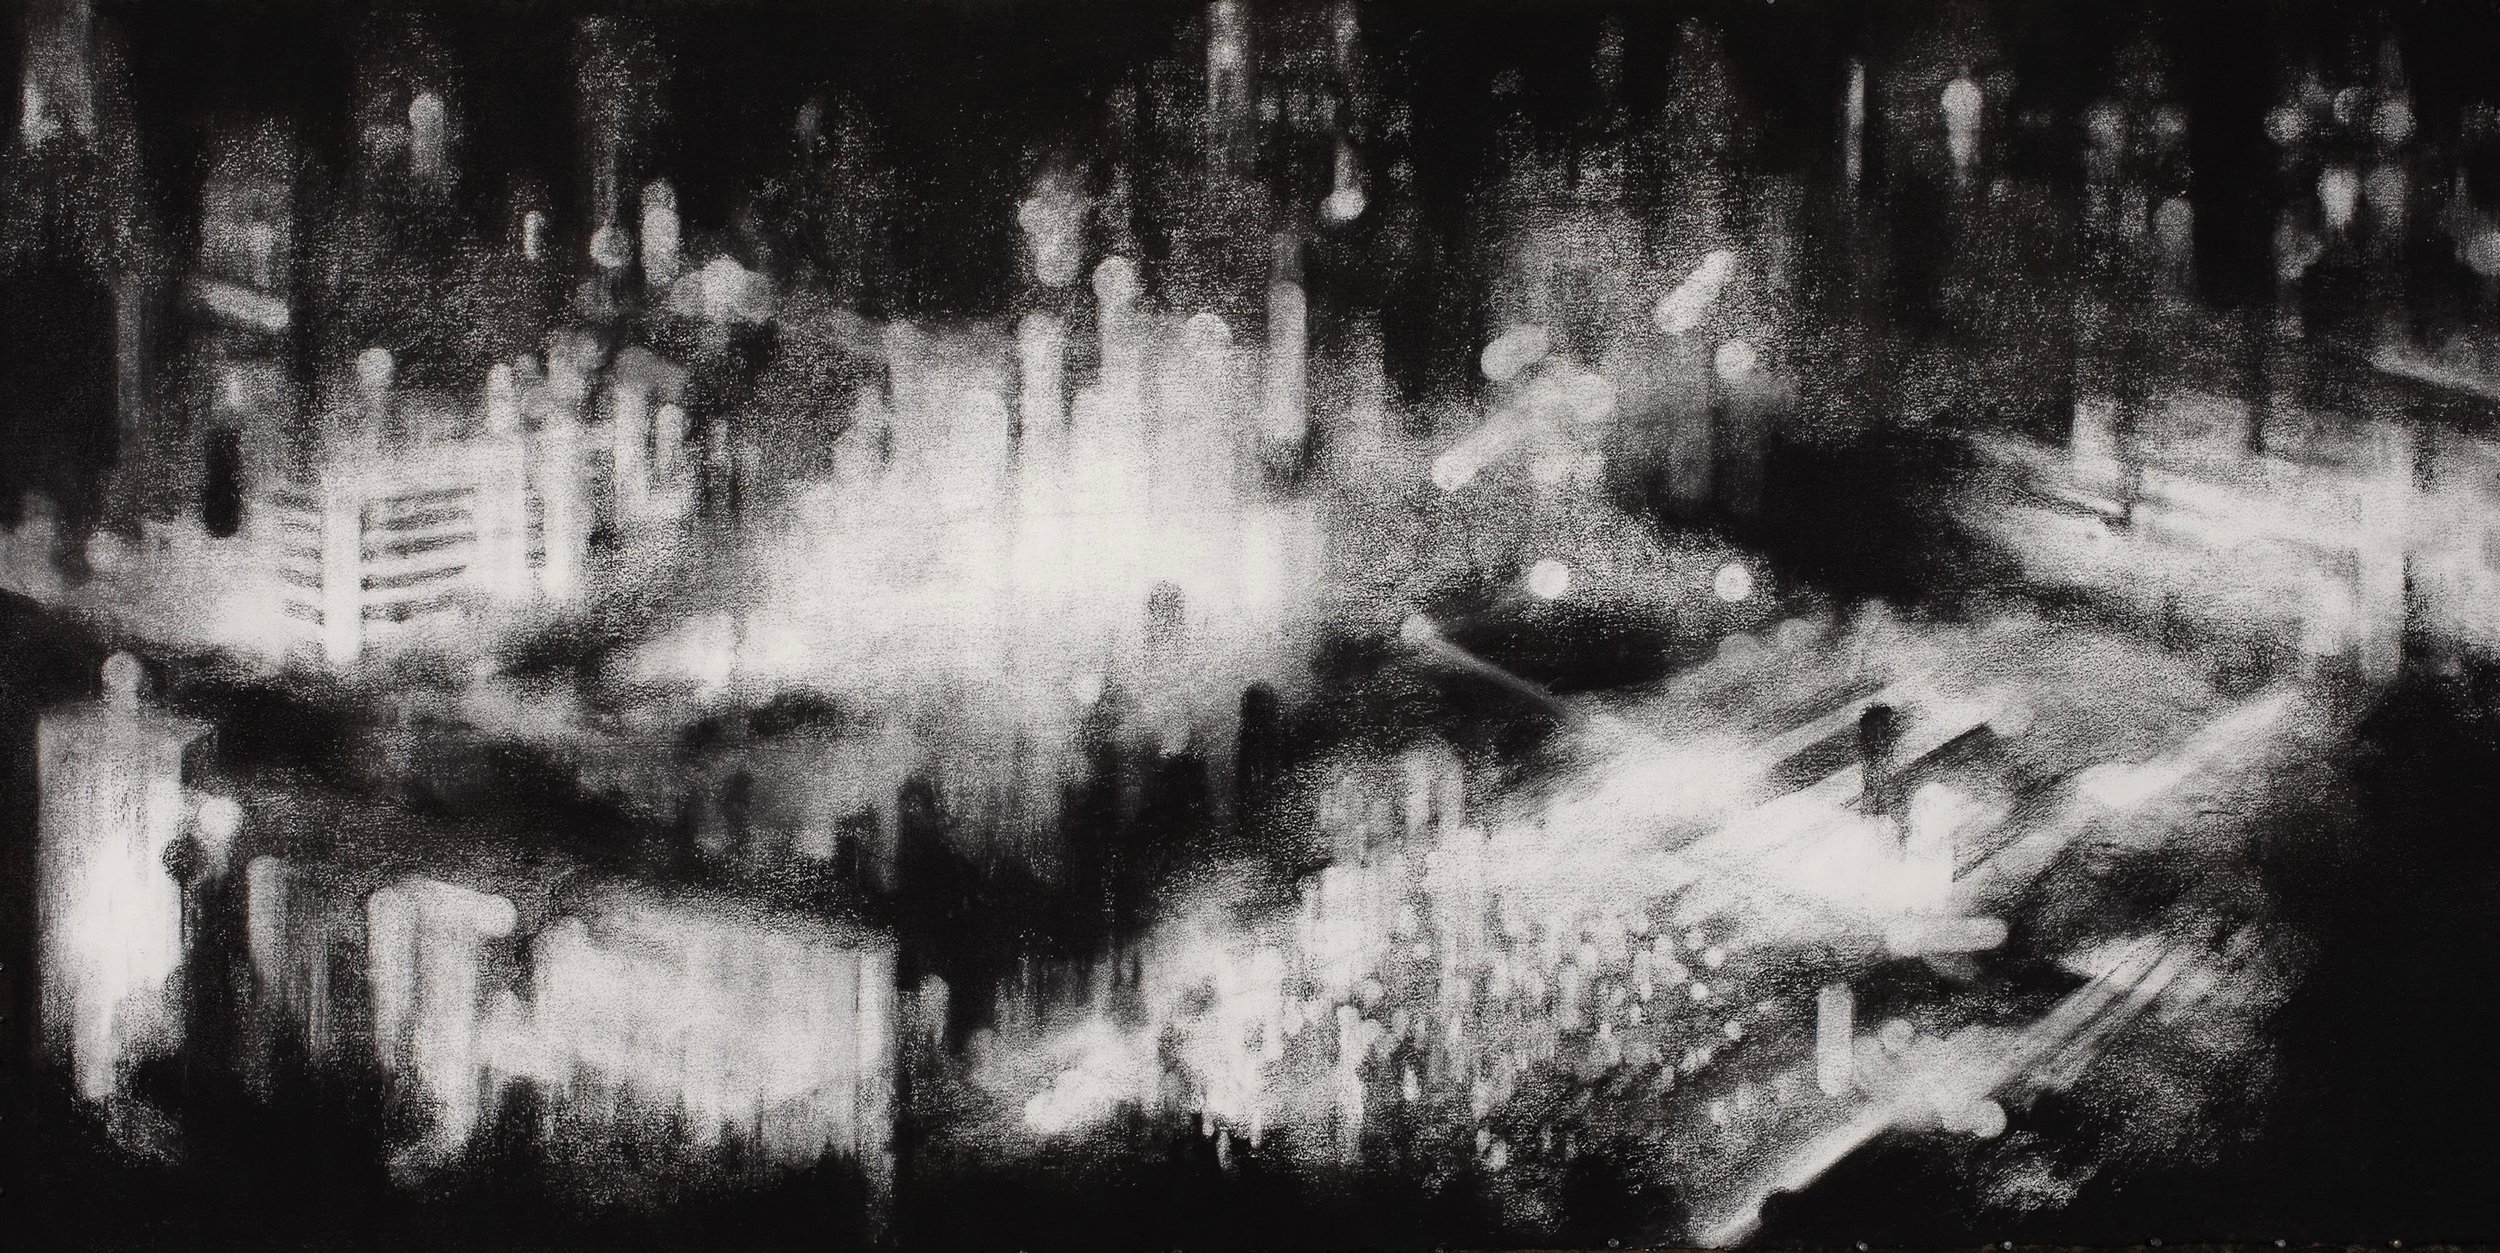 Shibuya lights, 2011 1460x2630 charcoal on paper